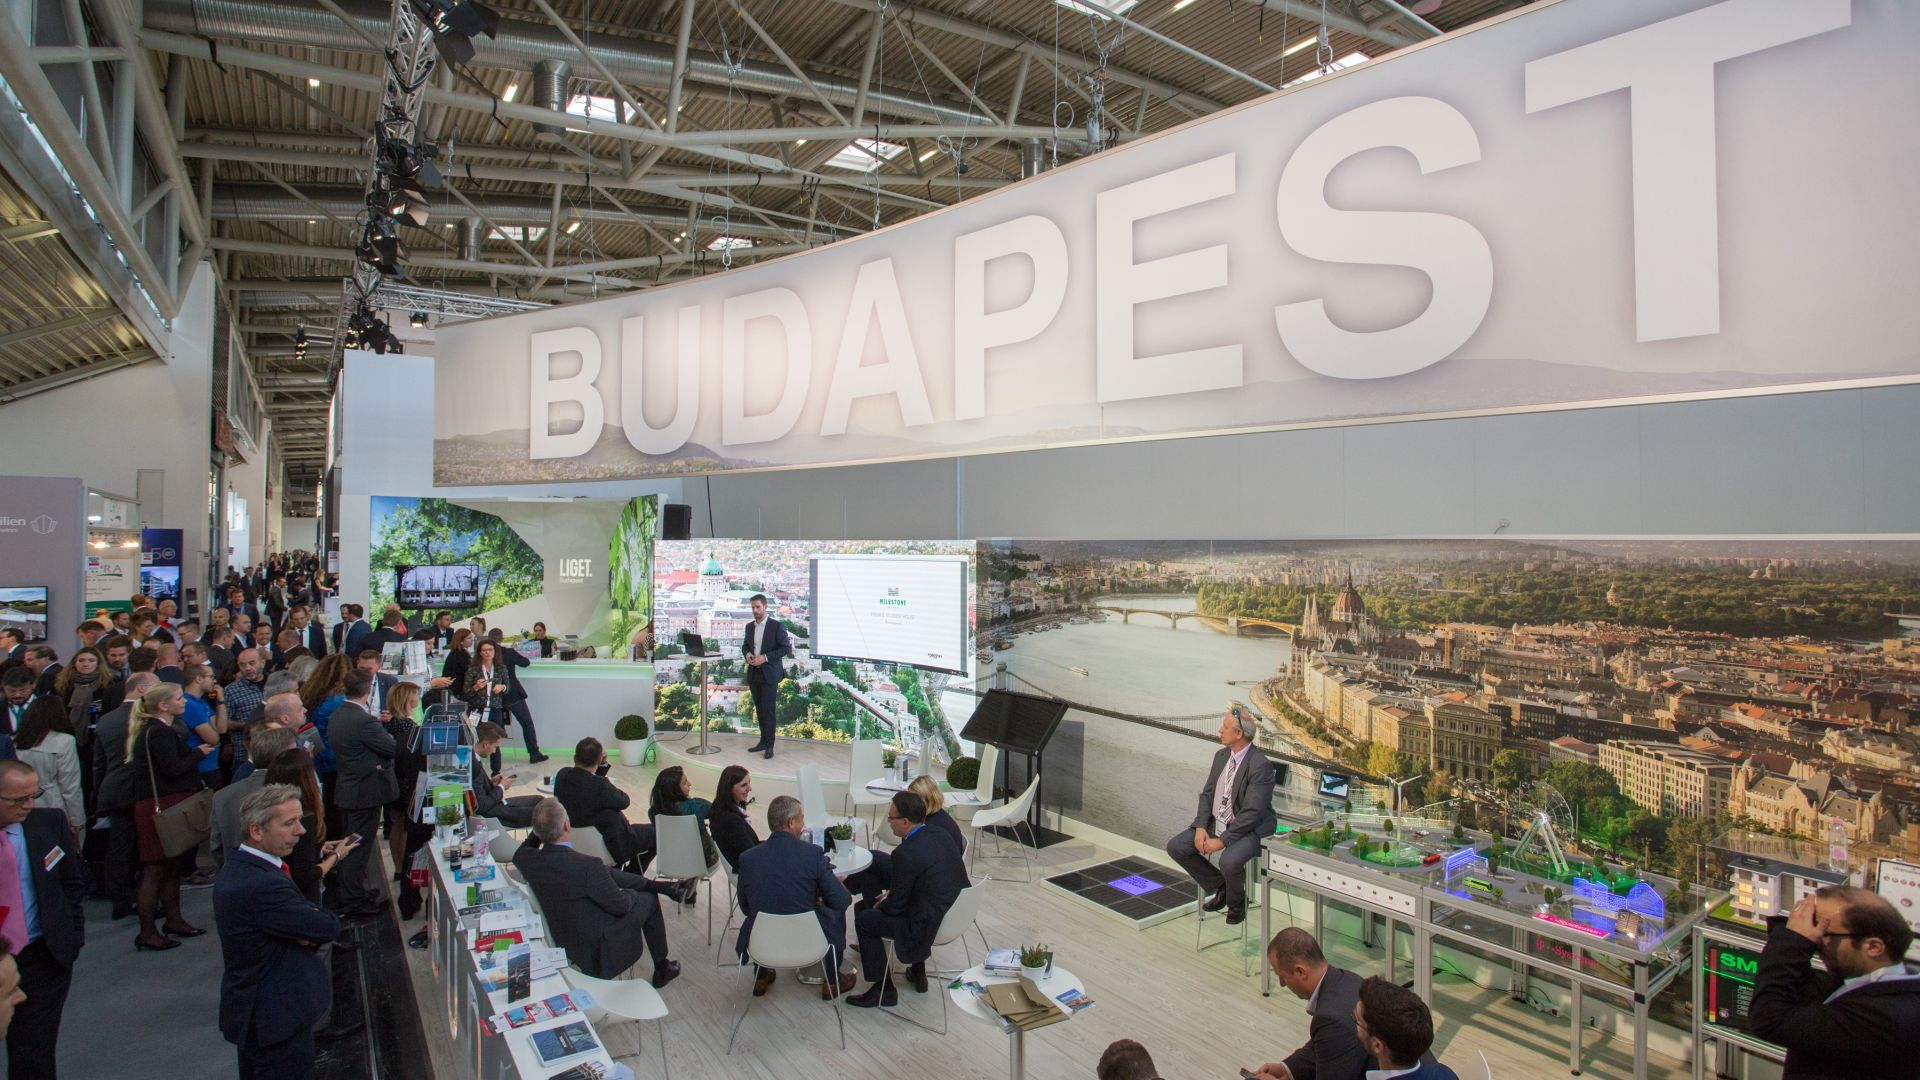 The Budapest booth at Expo Real 2017